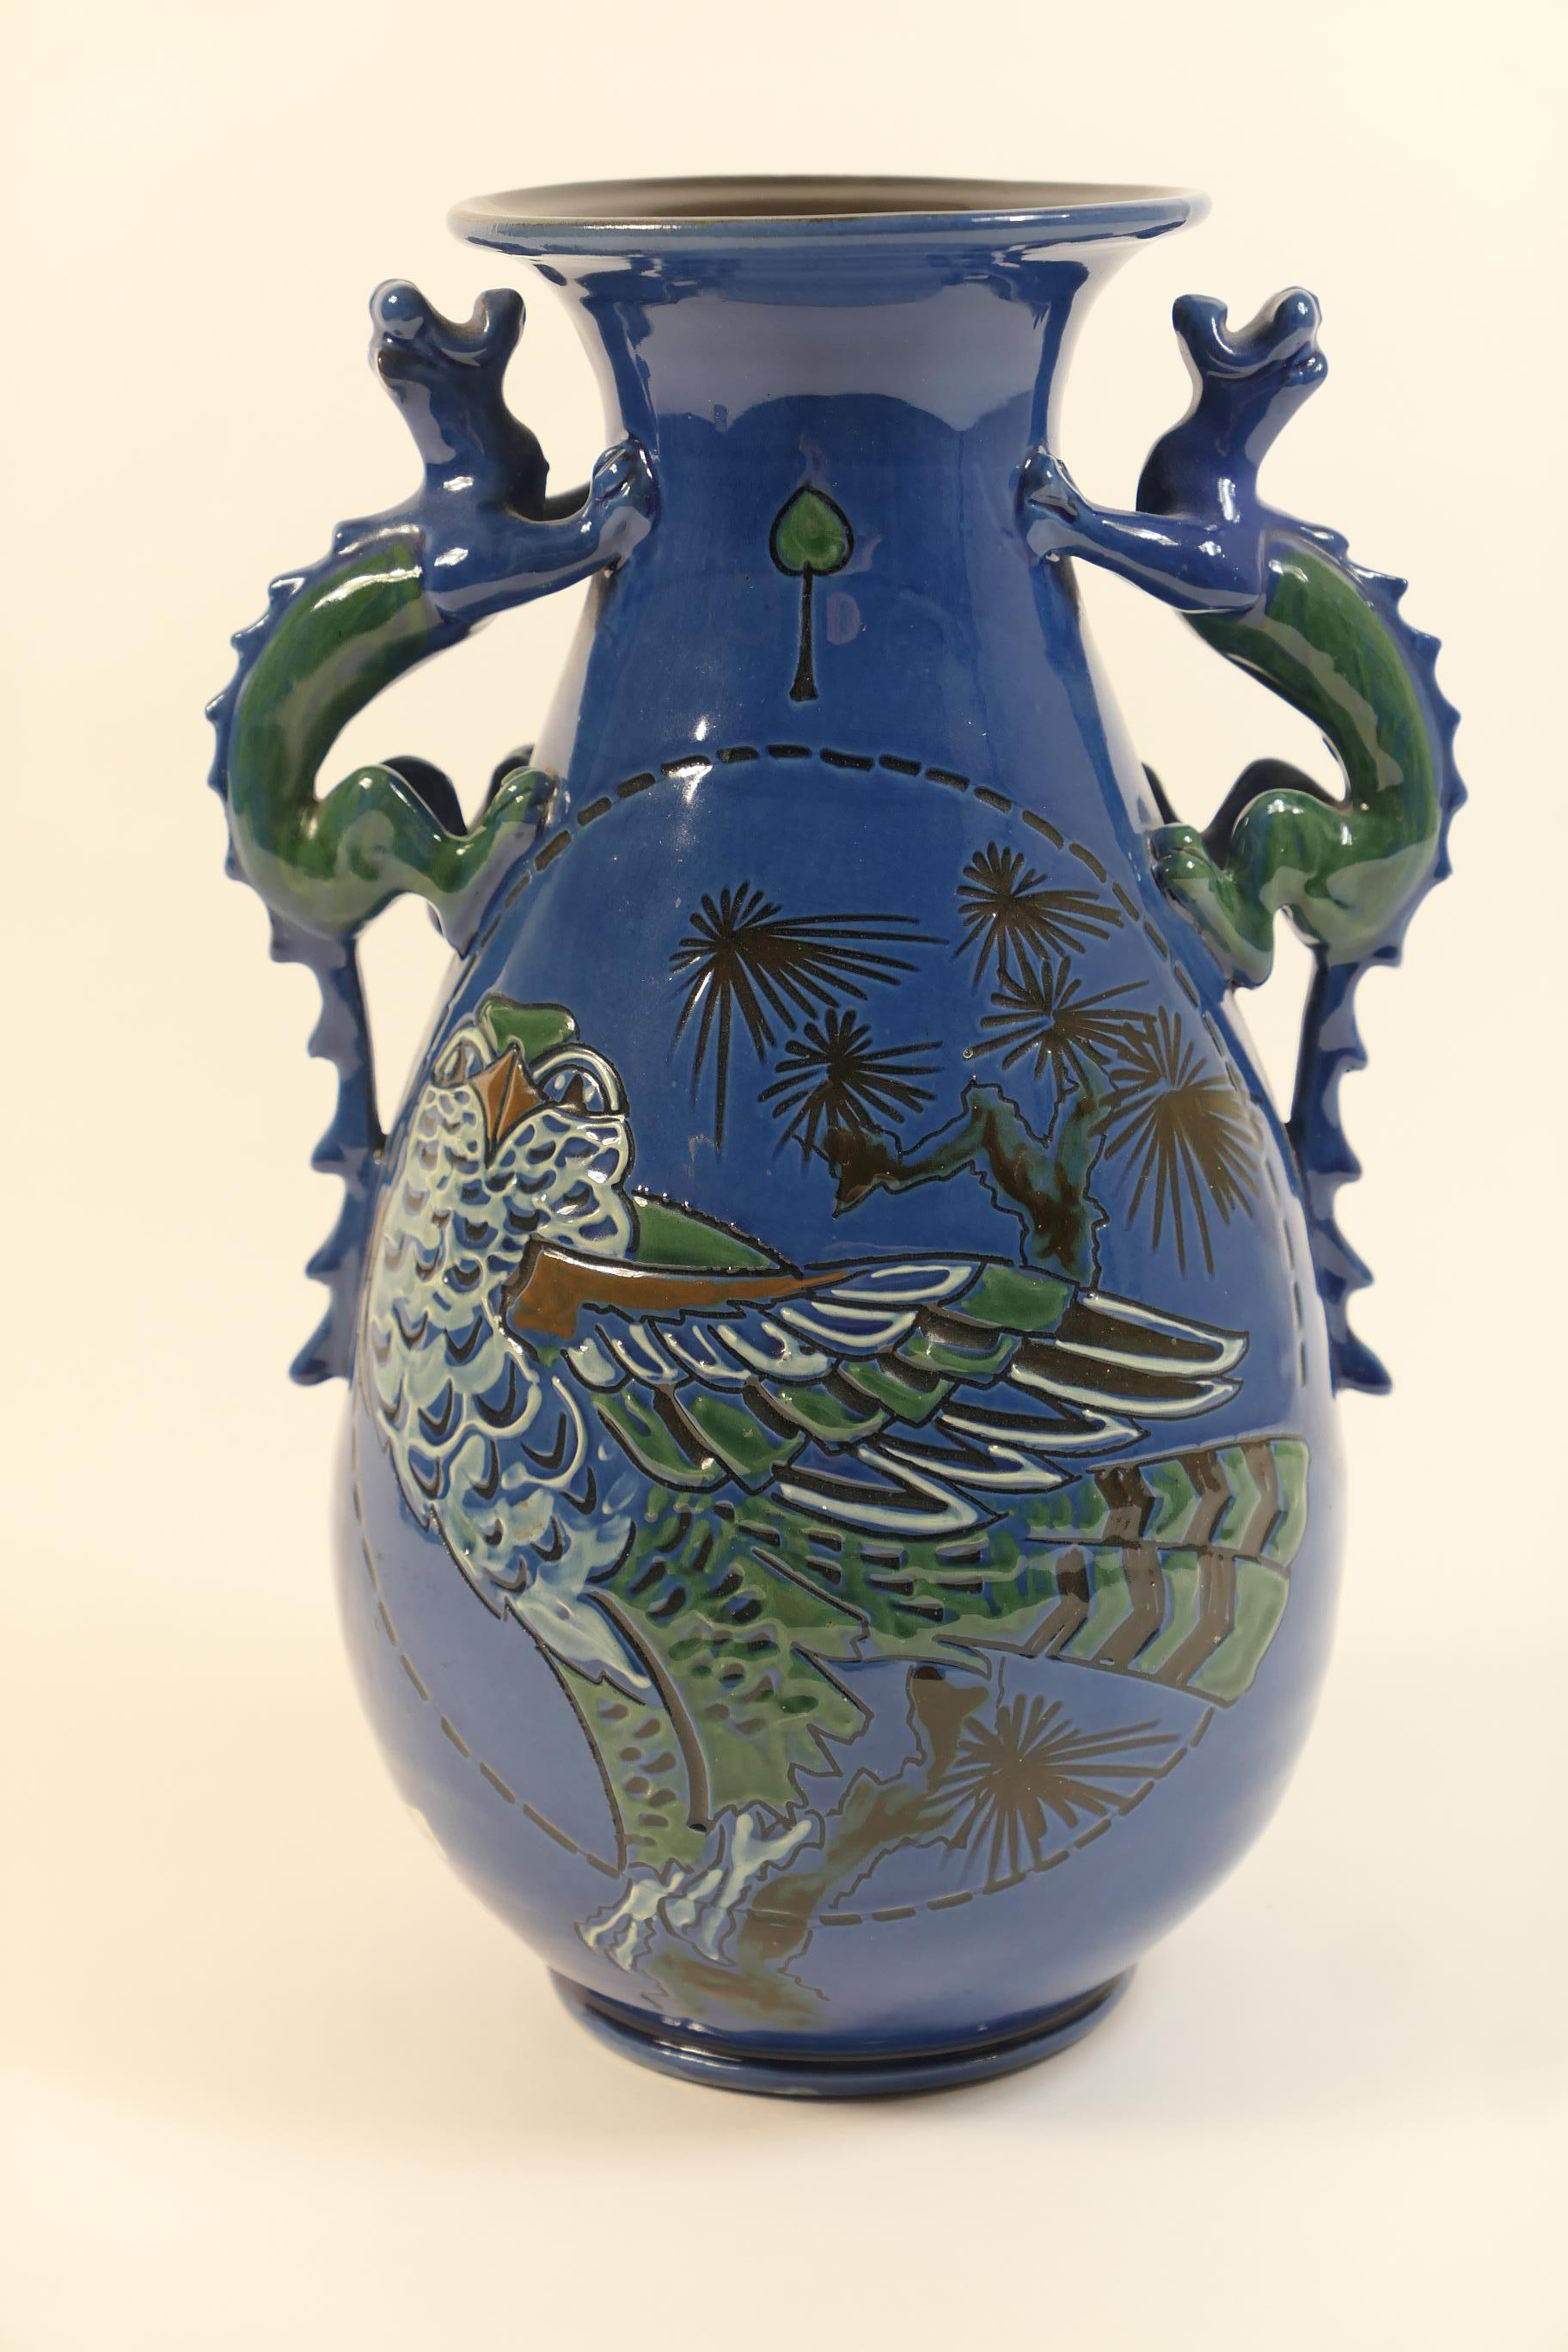 Lot 4 - Brannam Barum vase, attributed to James Dewdney, baluster form with dragon handles at the neck,